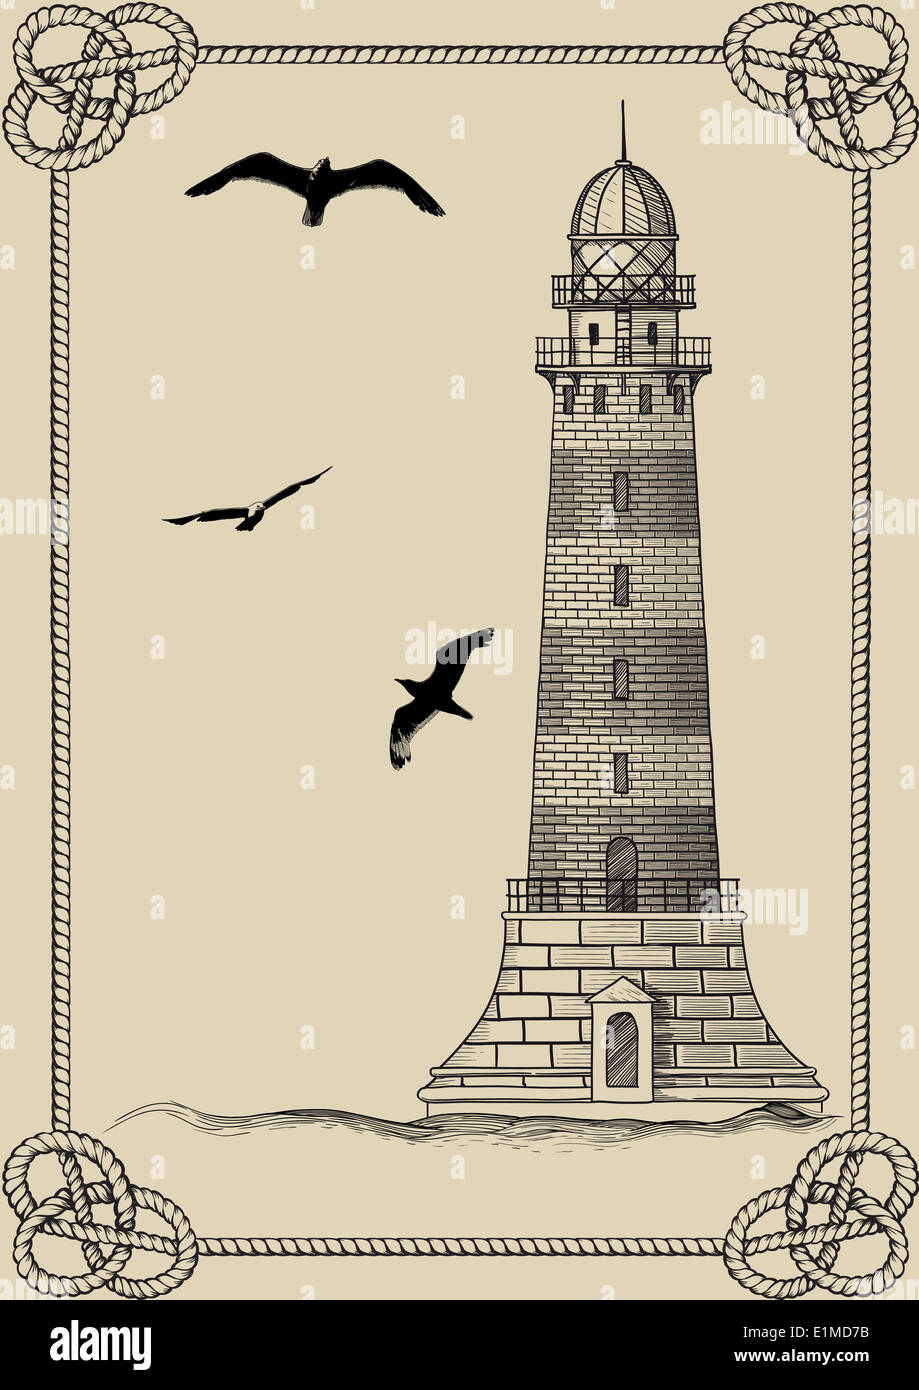 Old lighthouse in frame - Stock Image